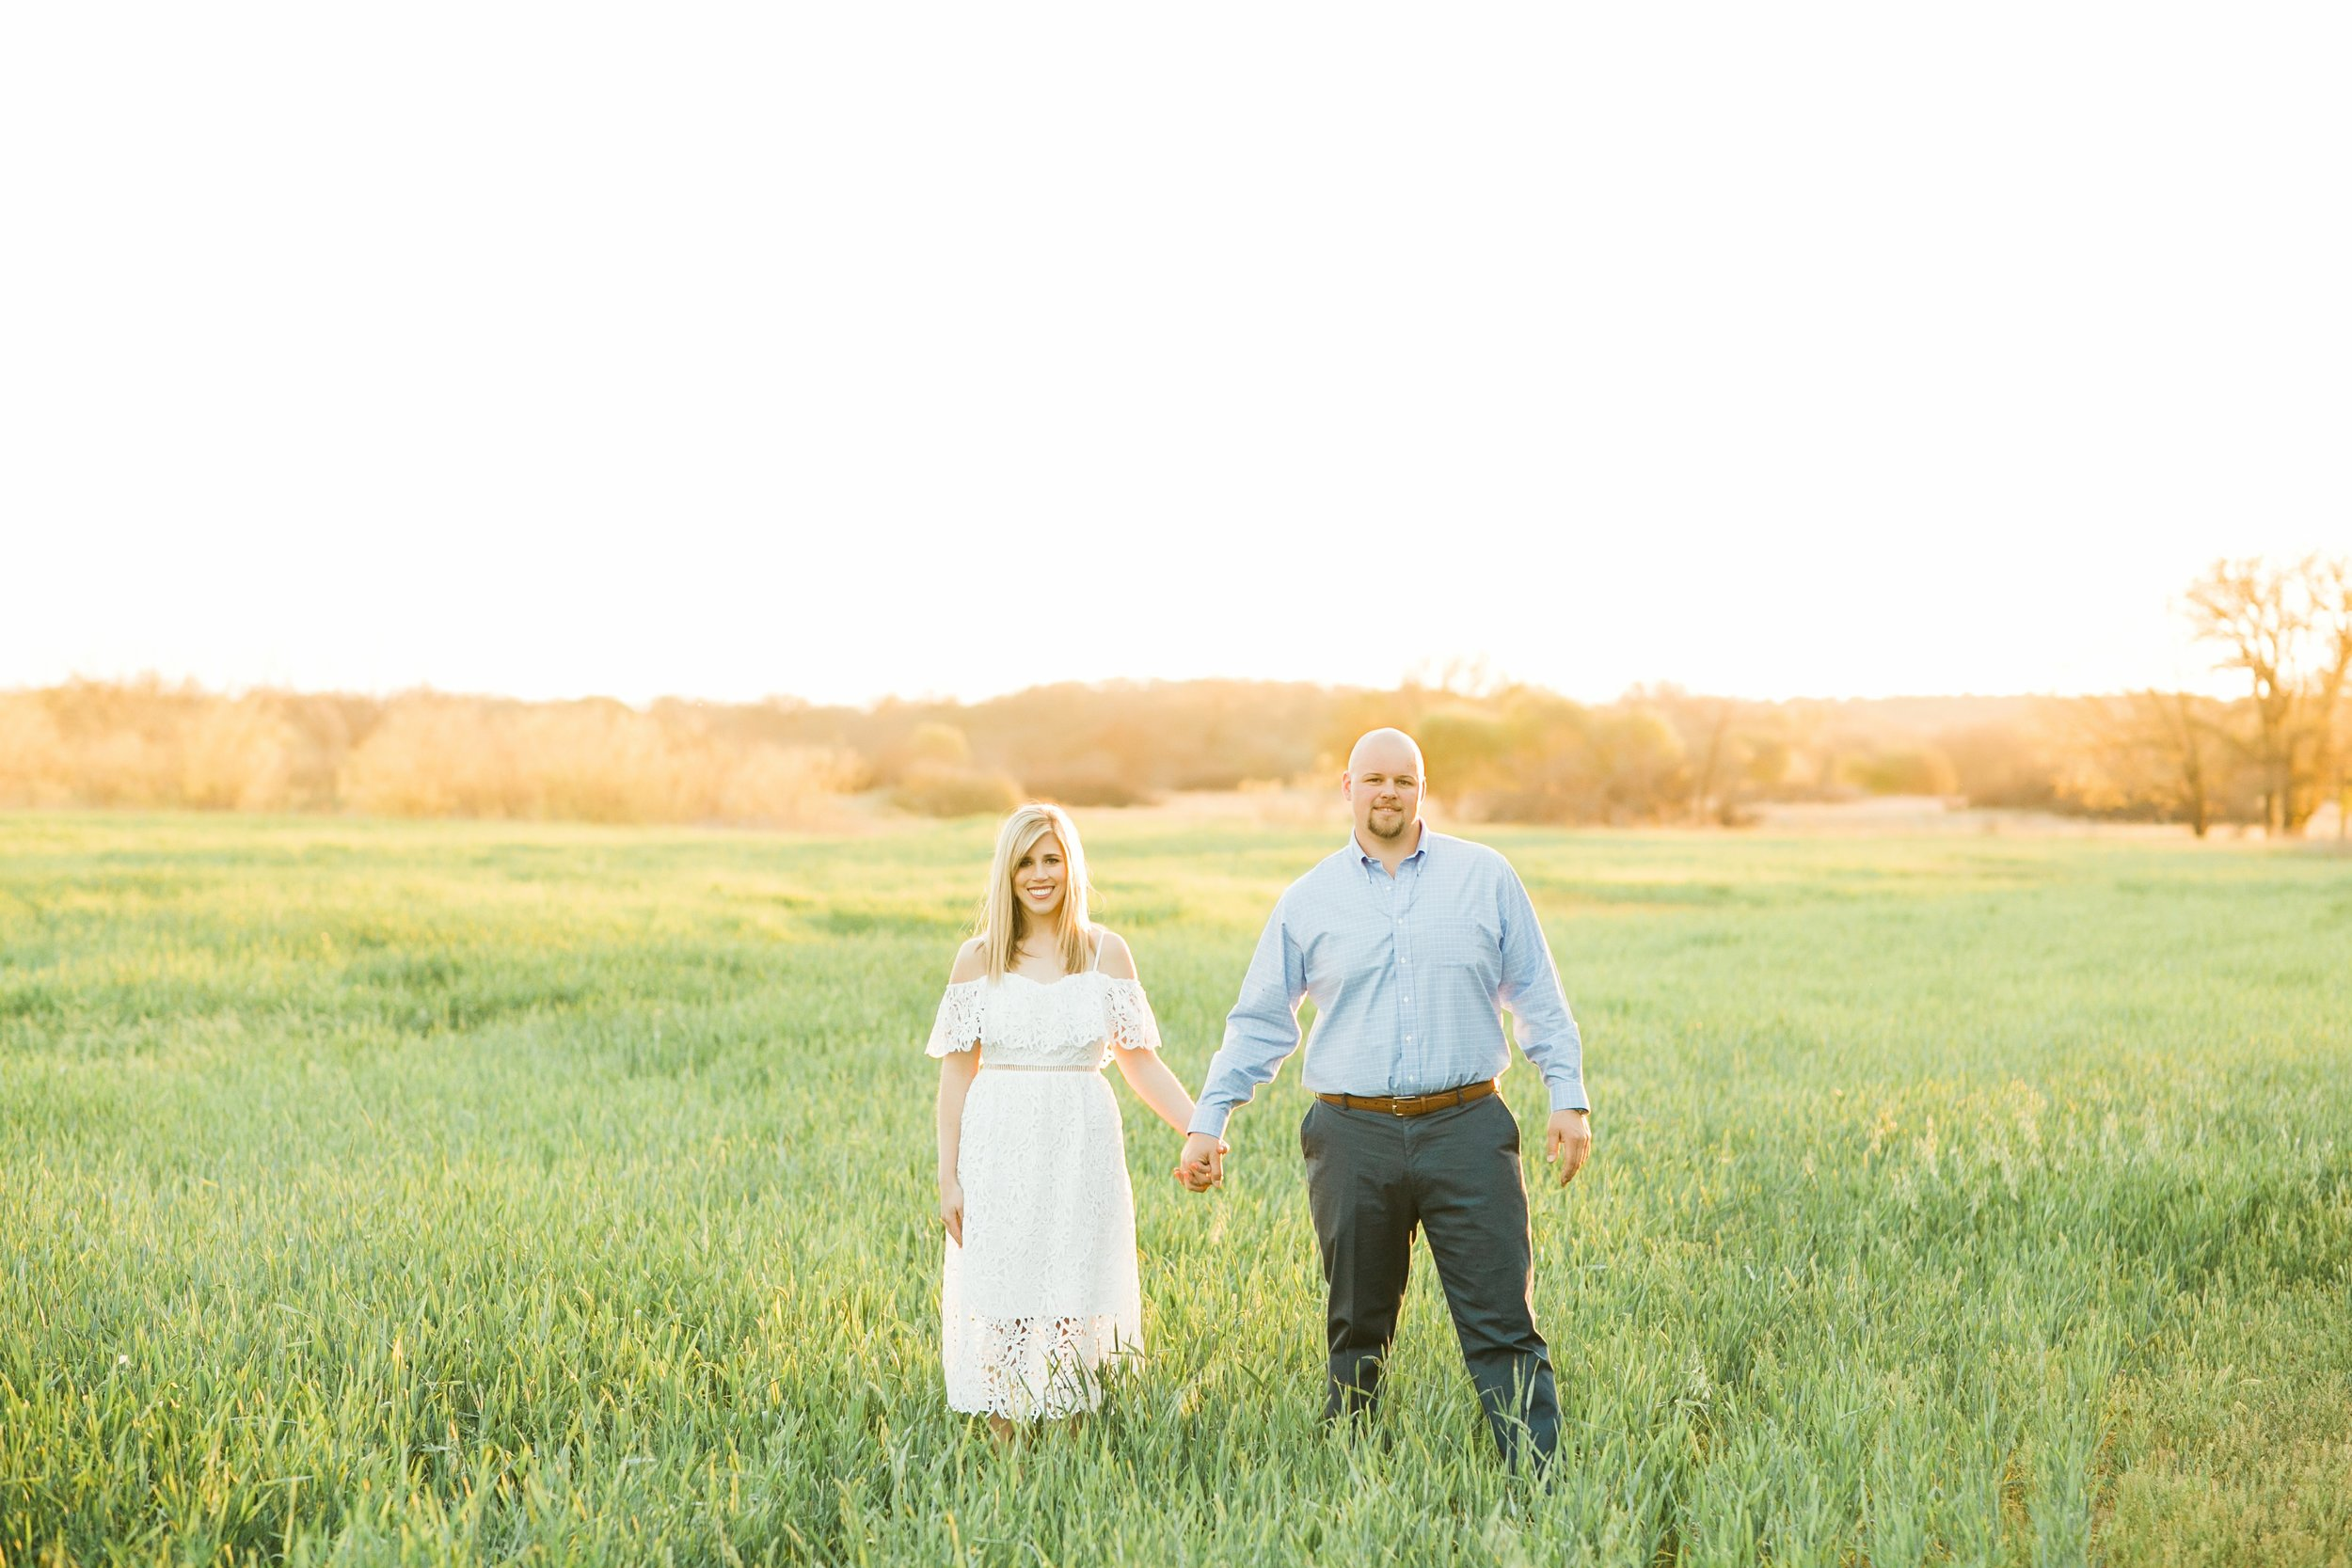 kayla-trent-country-engagement-session-texas-windthorst-graham-wichita-falls-jeep-engaged-00010.jpg